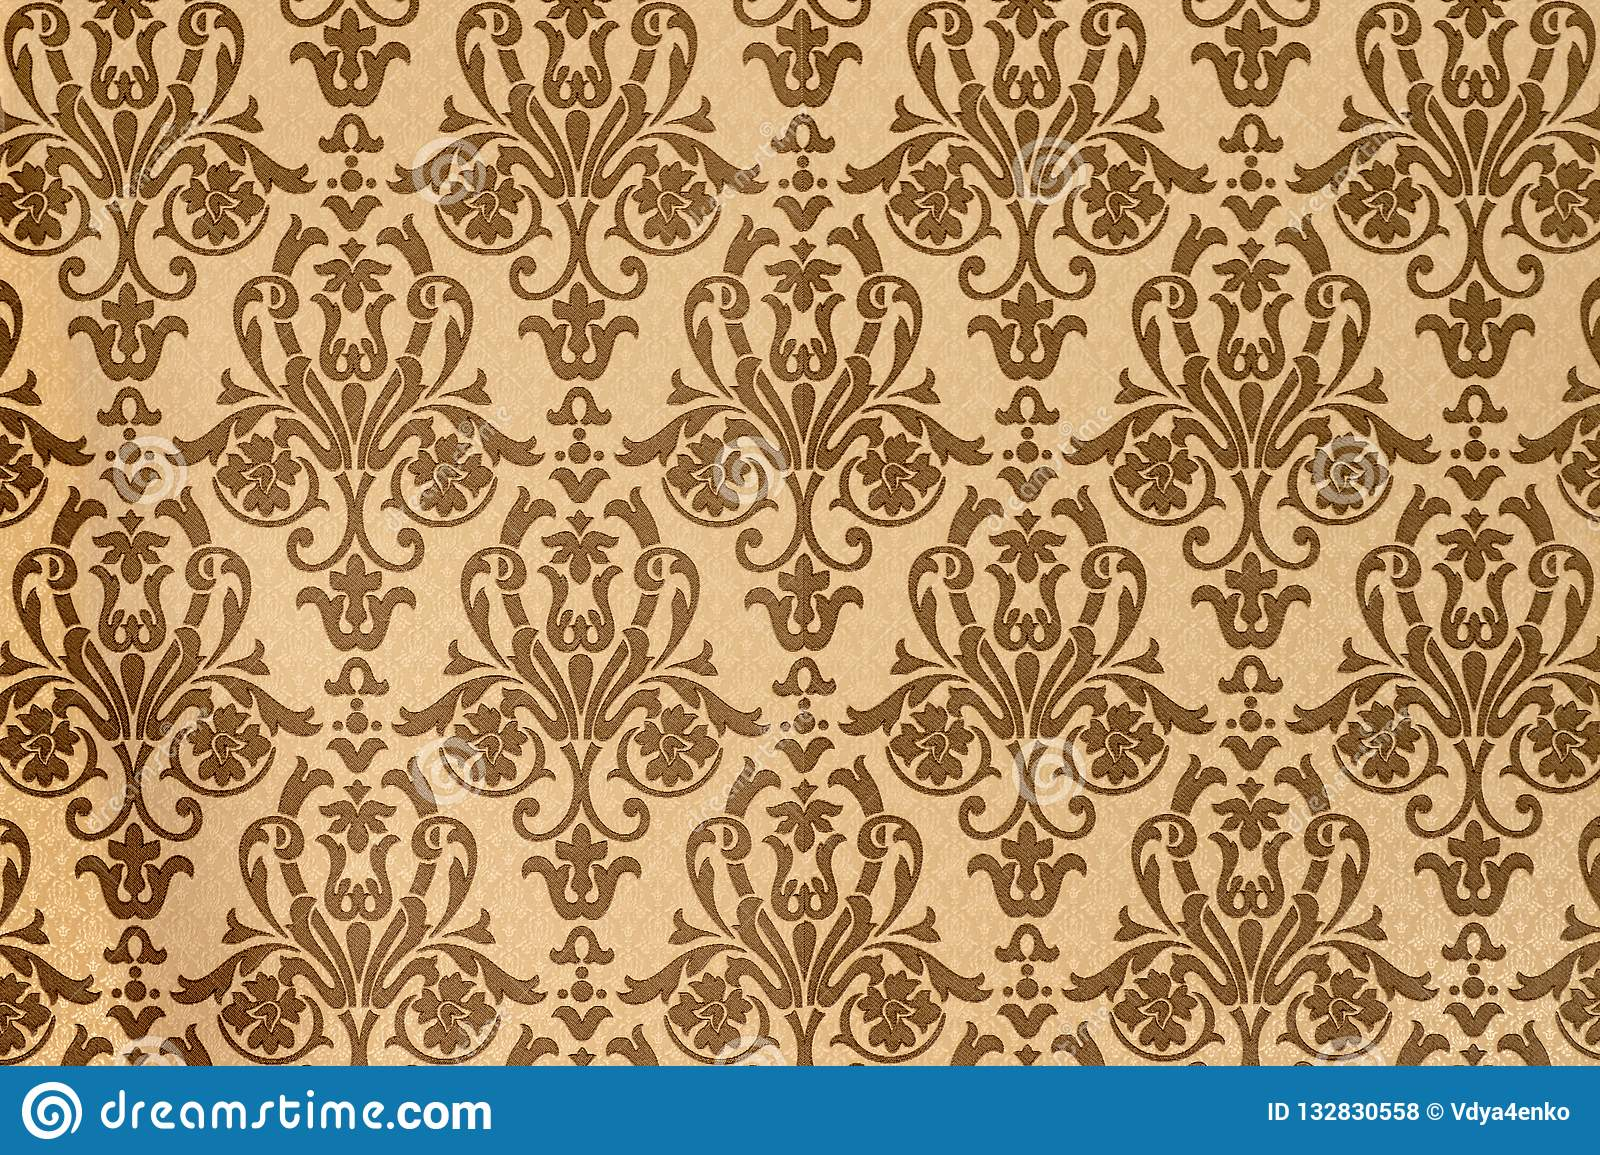 Element of interior decoration of the house. Brown-coffee pattern of Baroque style wallpapers